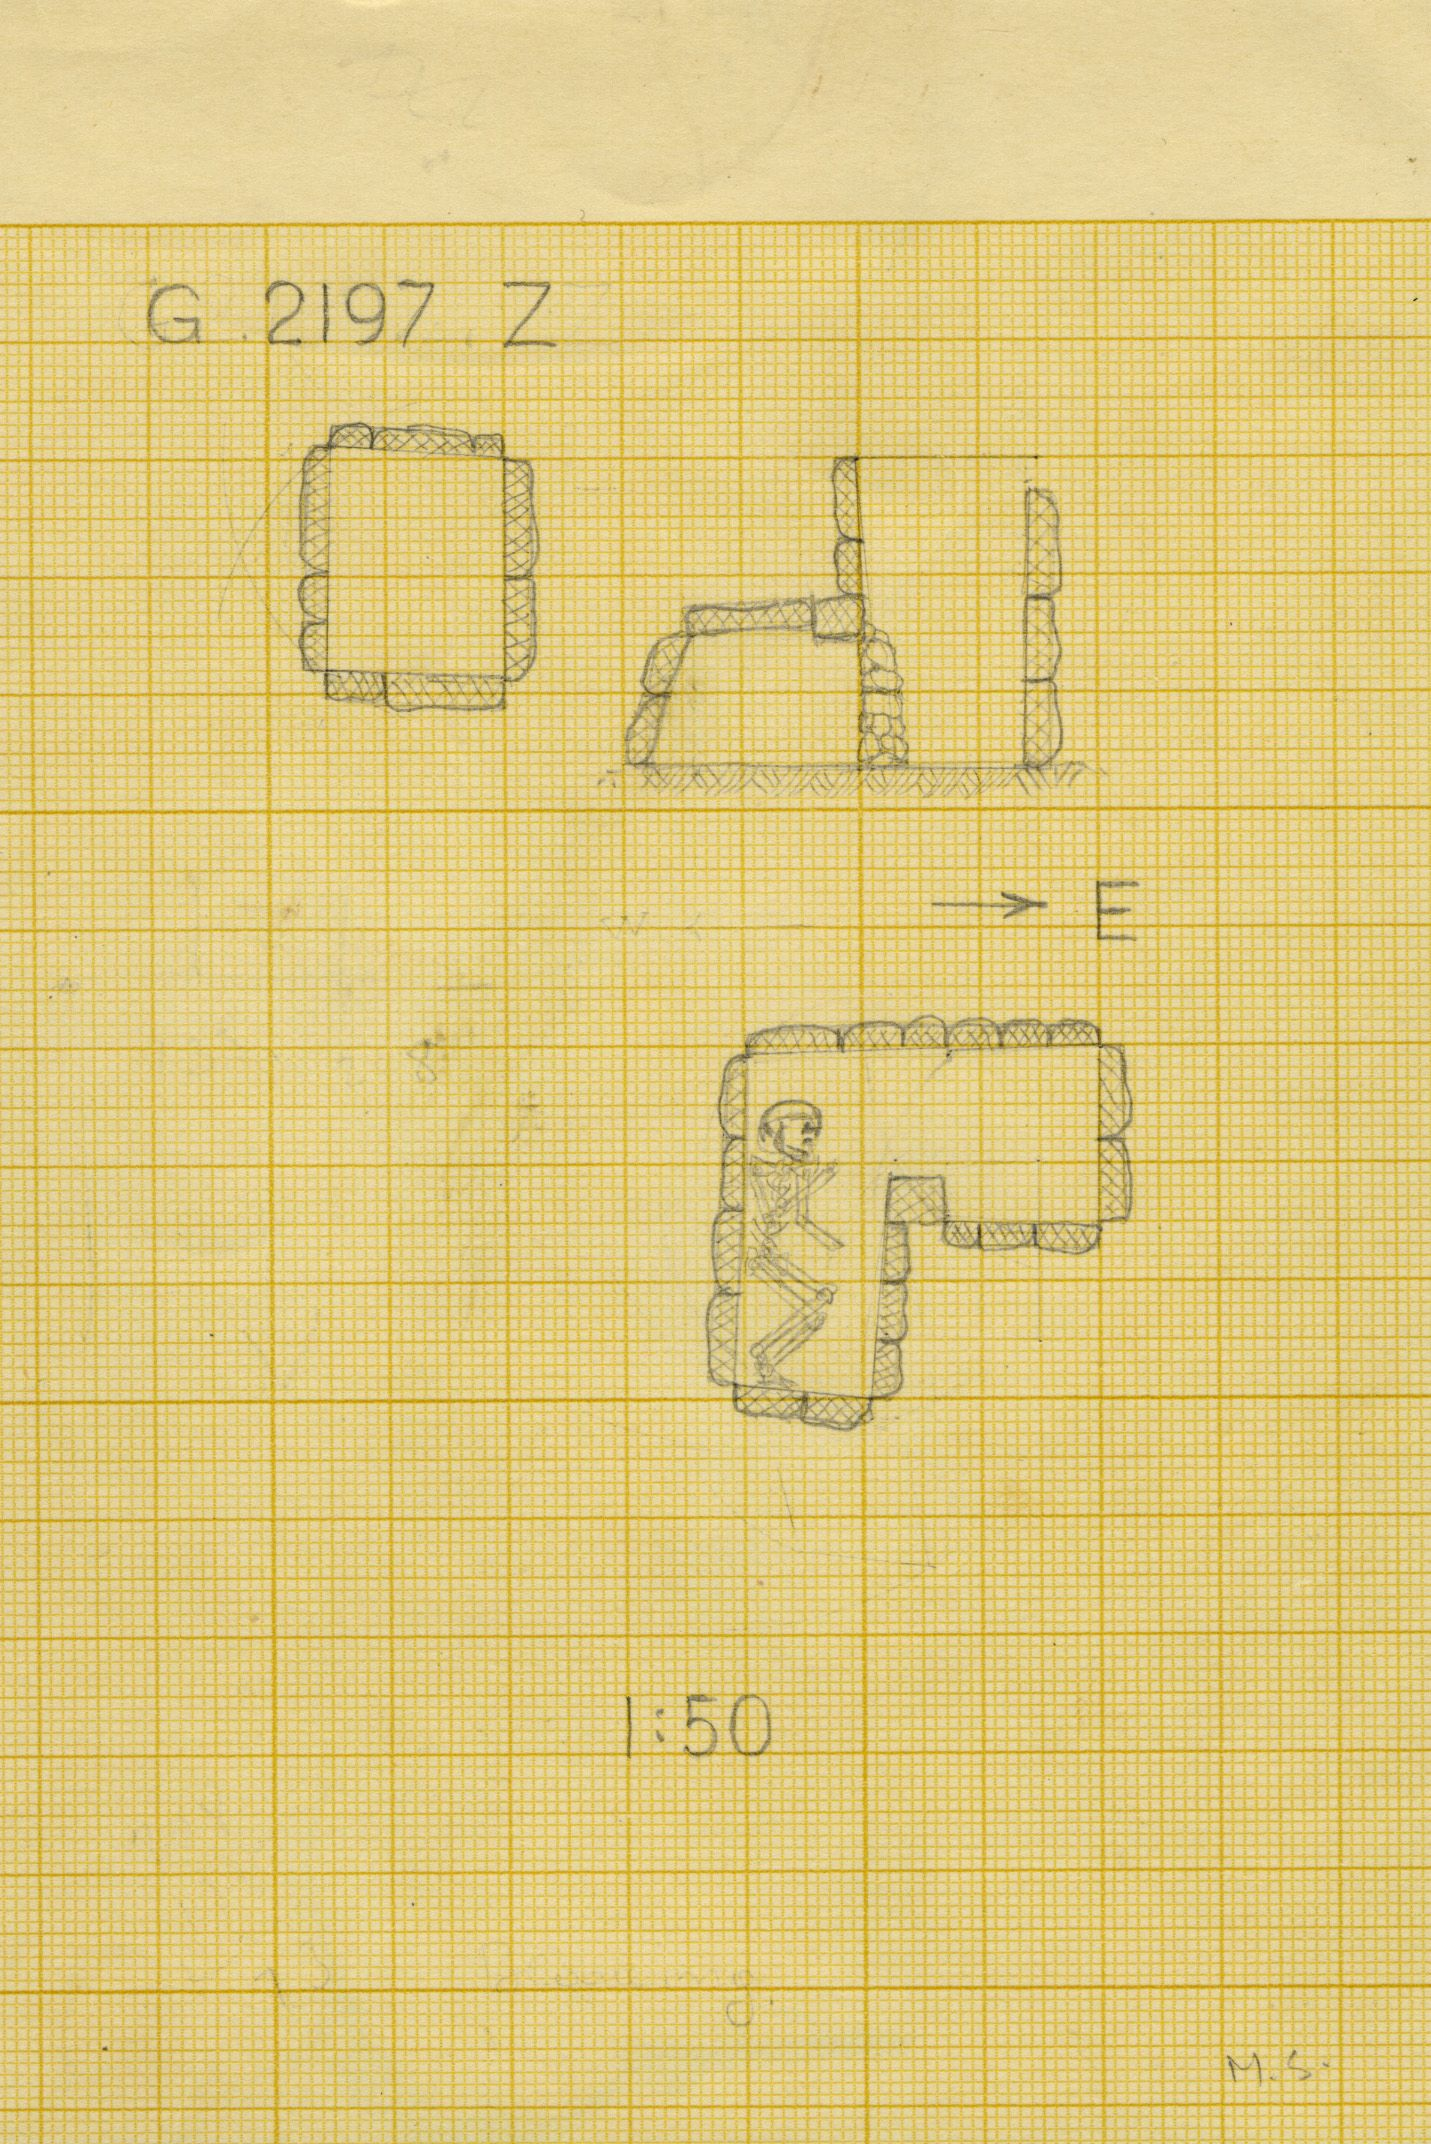 Maps and plans: G 2197, Shaft Z